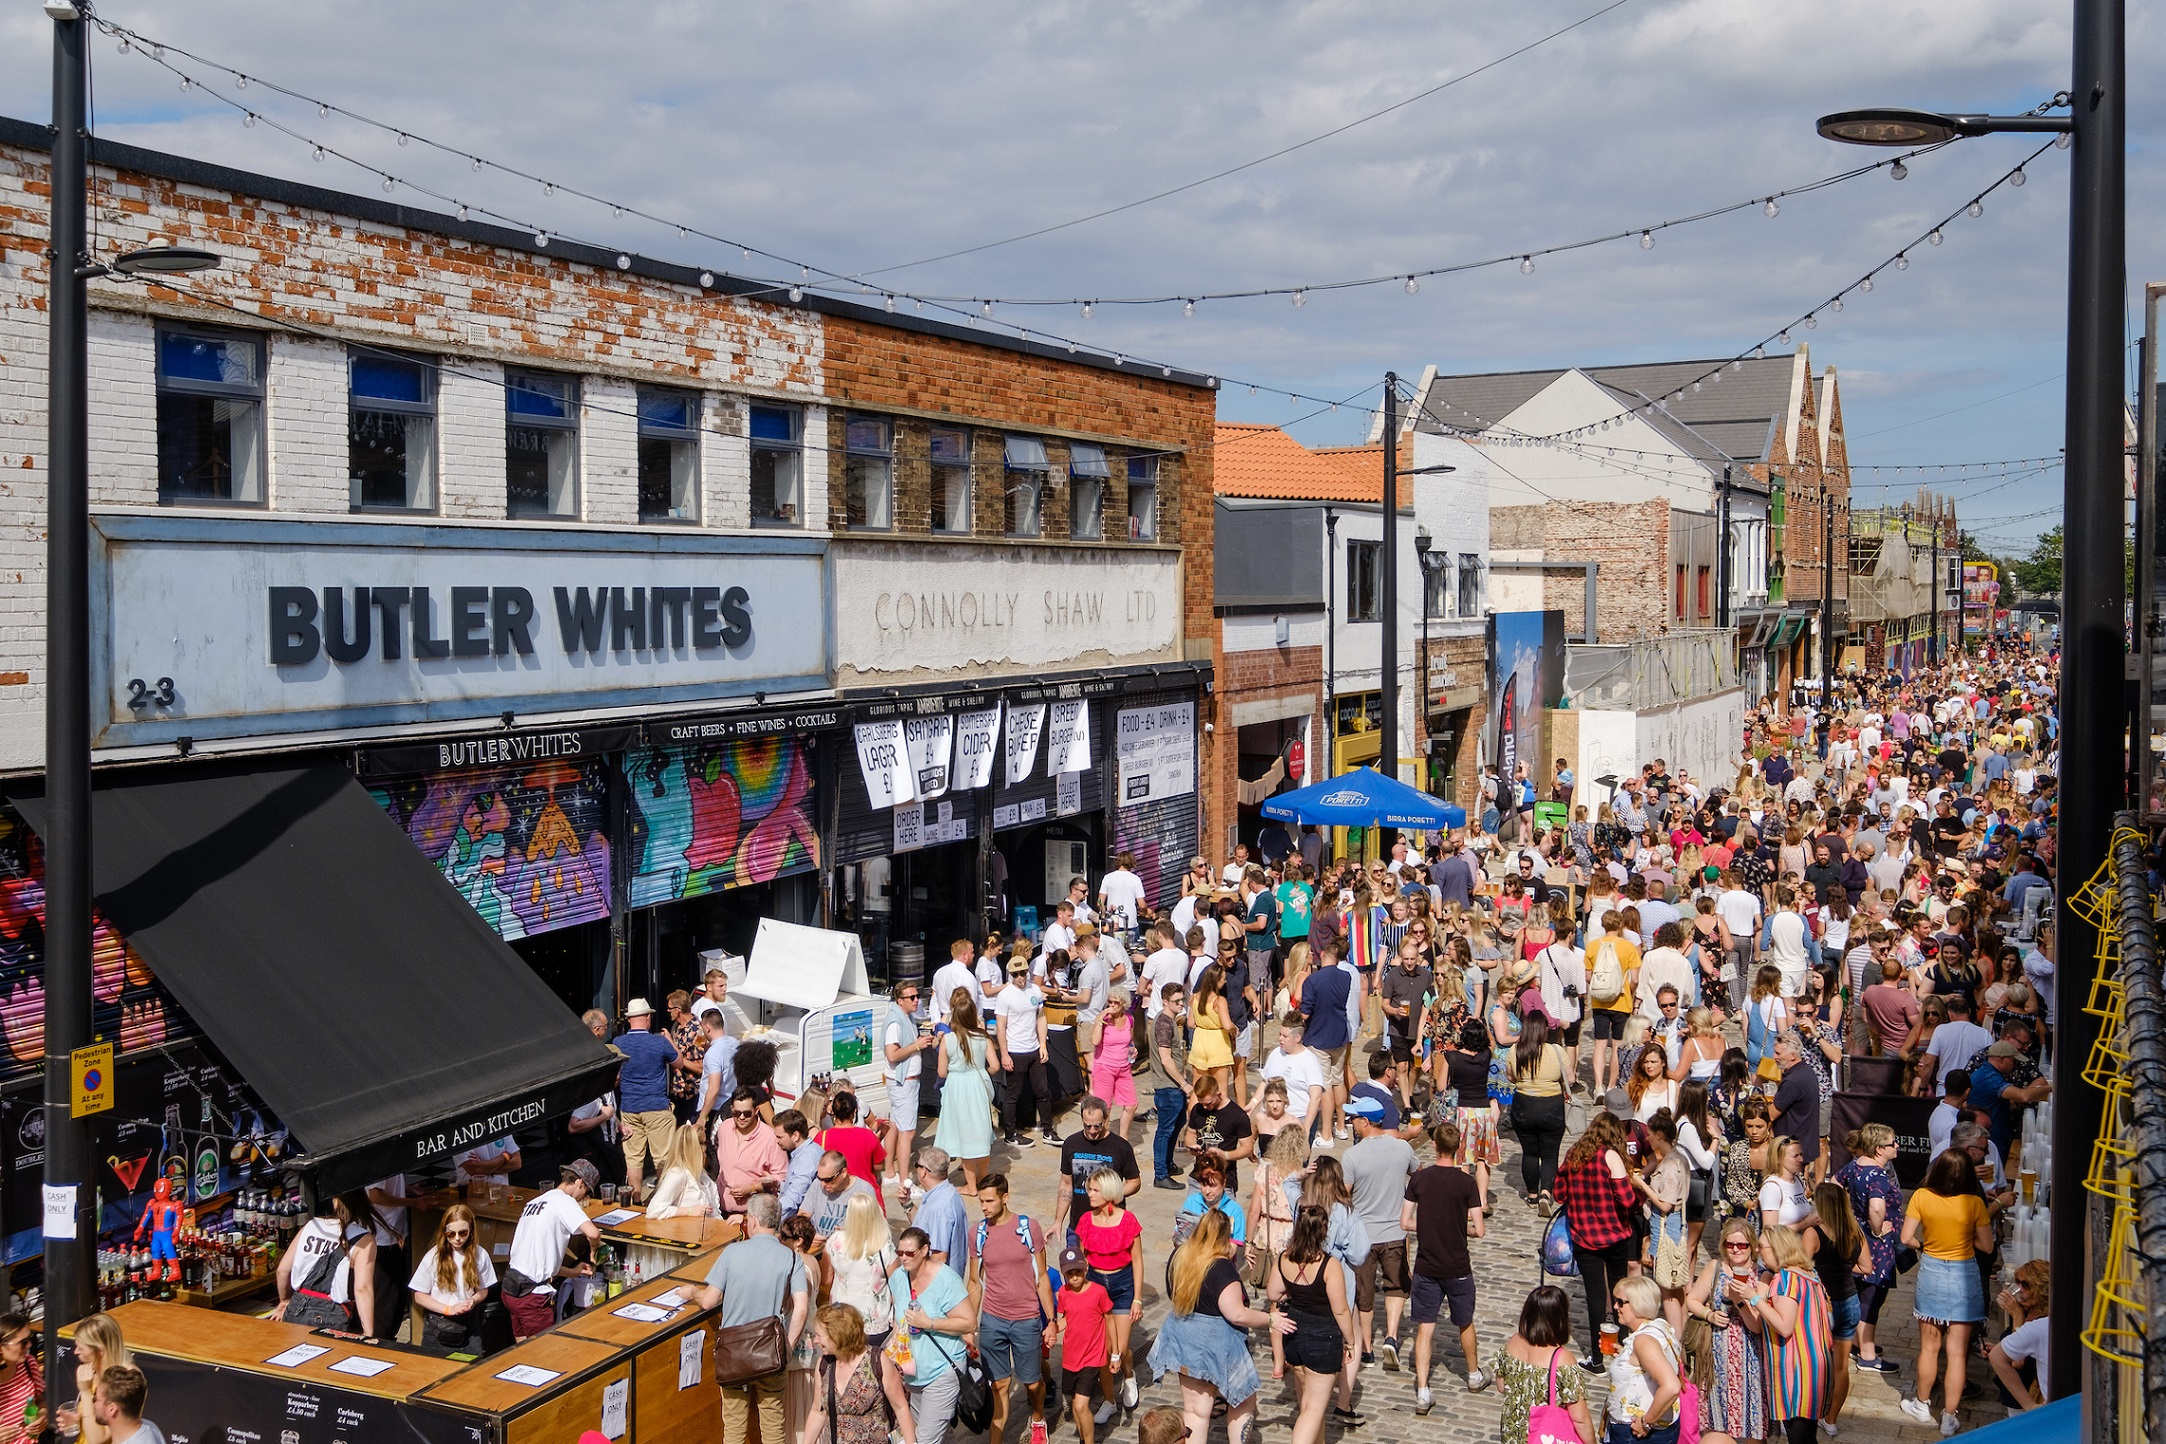 Crowds in Humber Street during last year's Humber Street Sesh. This year businesses will be open the full length of the street for the first time.